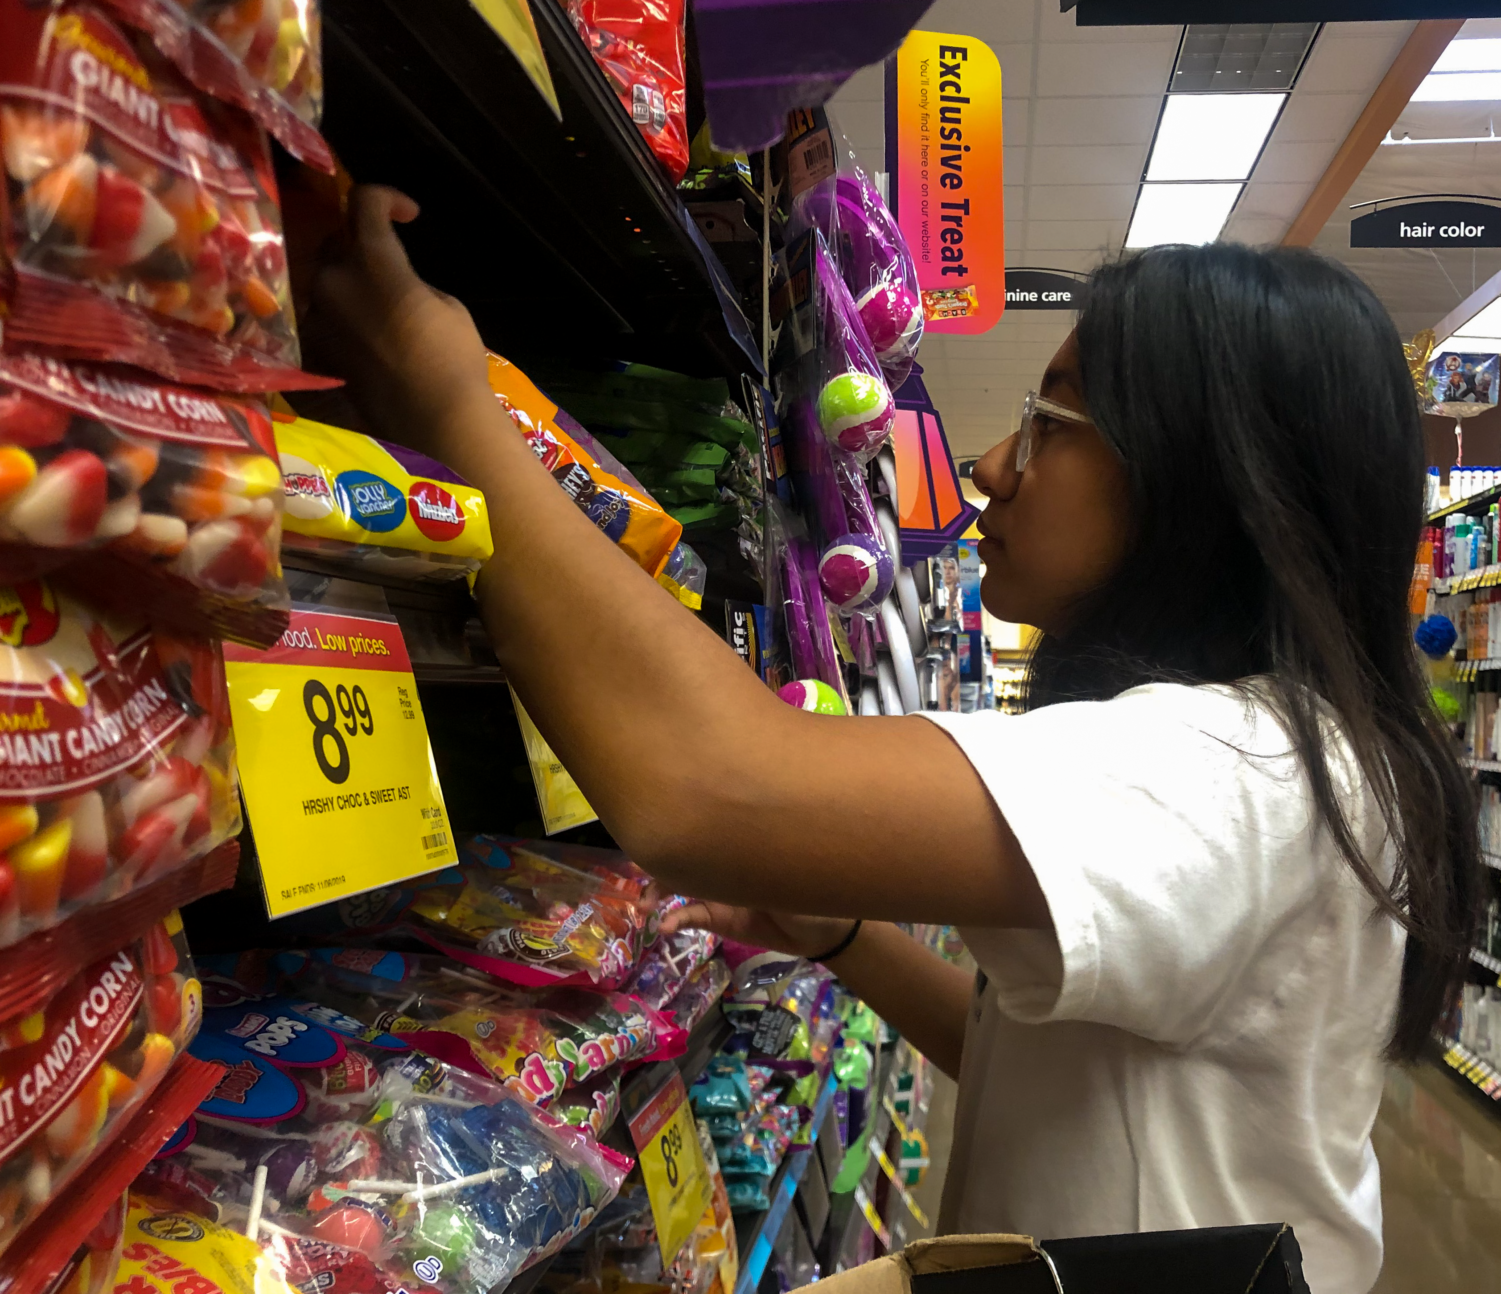 Sophomore Cinta Adhiningrat takes a look at the candy selections in the Halloween candy aisle at a local Ralphs. She mentions that her favorite candy is KitKats while her least favorite candy is Candy Corn.